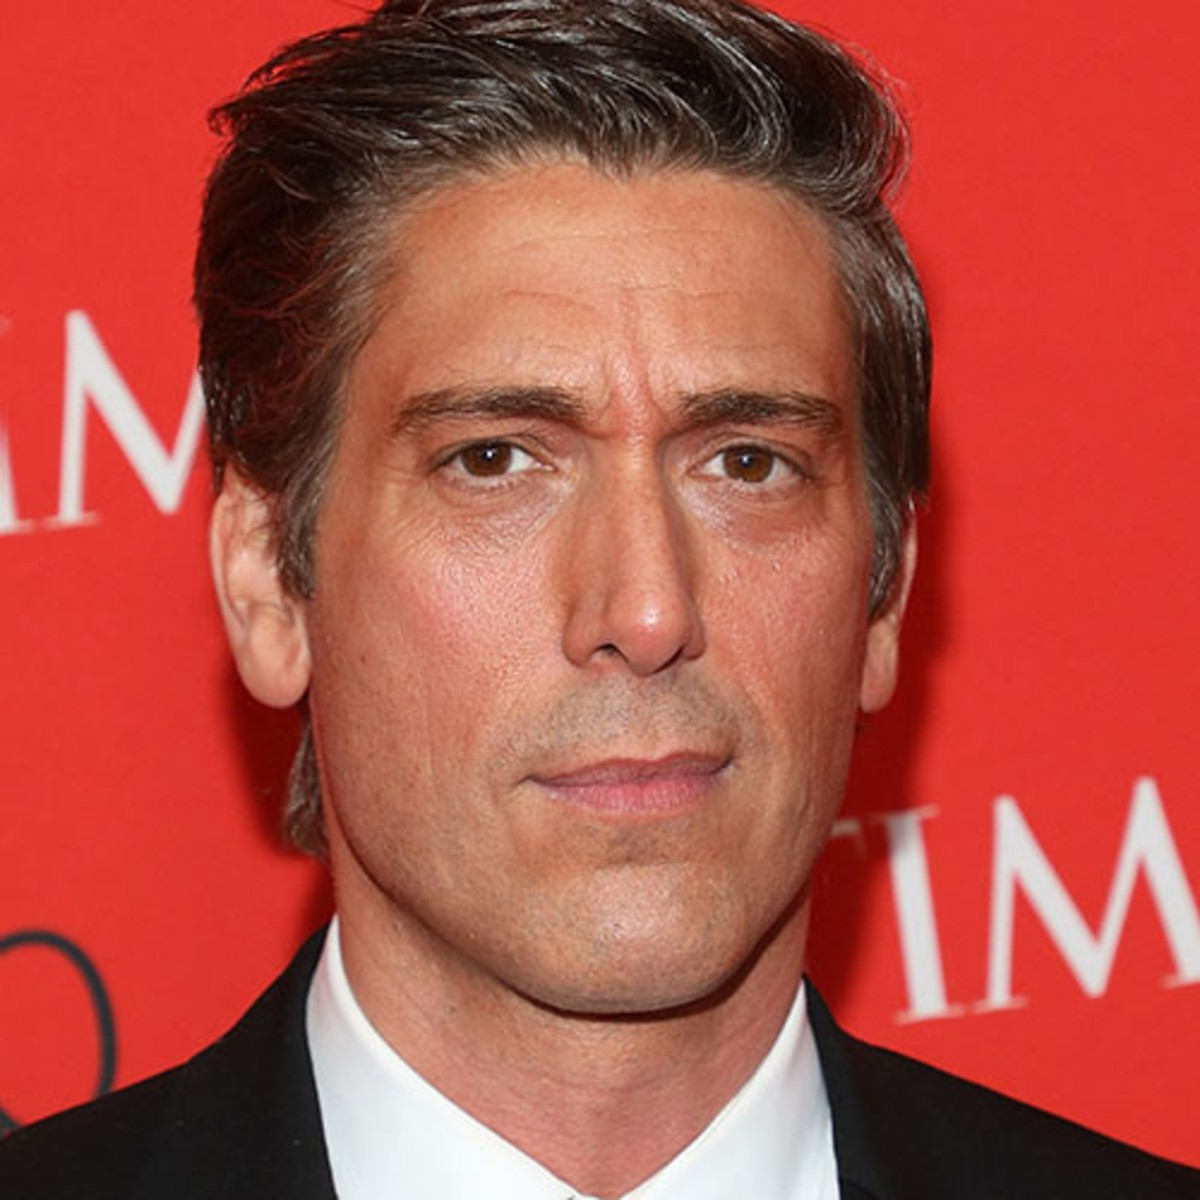 David Muir - ABC News, Parents & Education - Biography